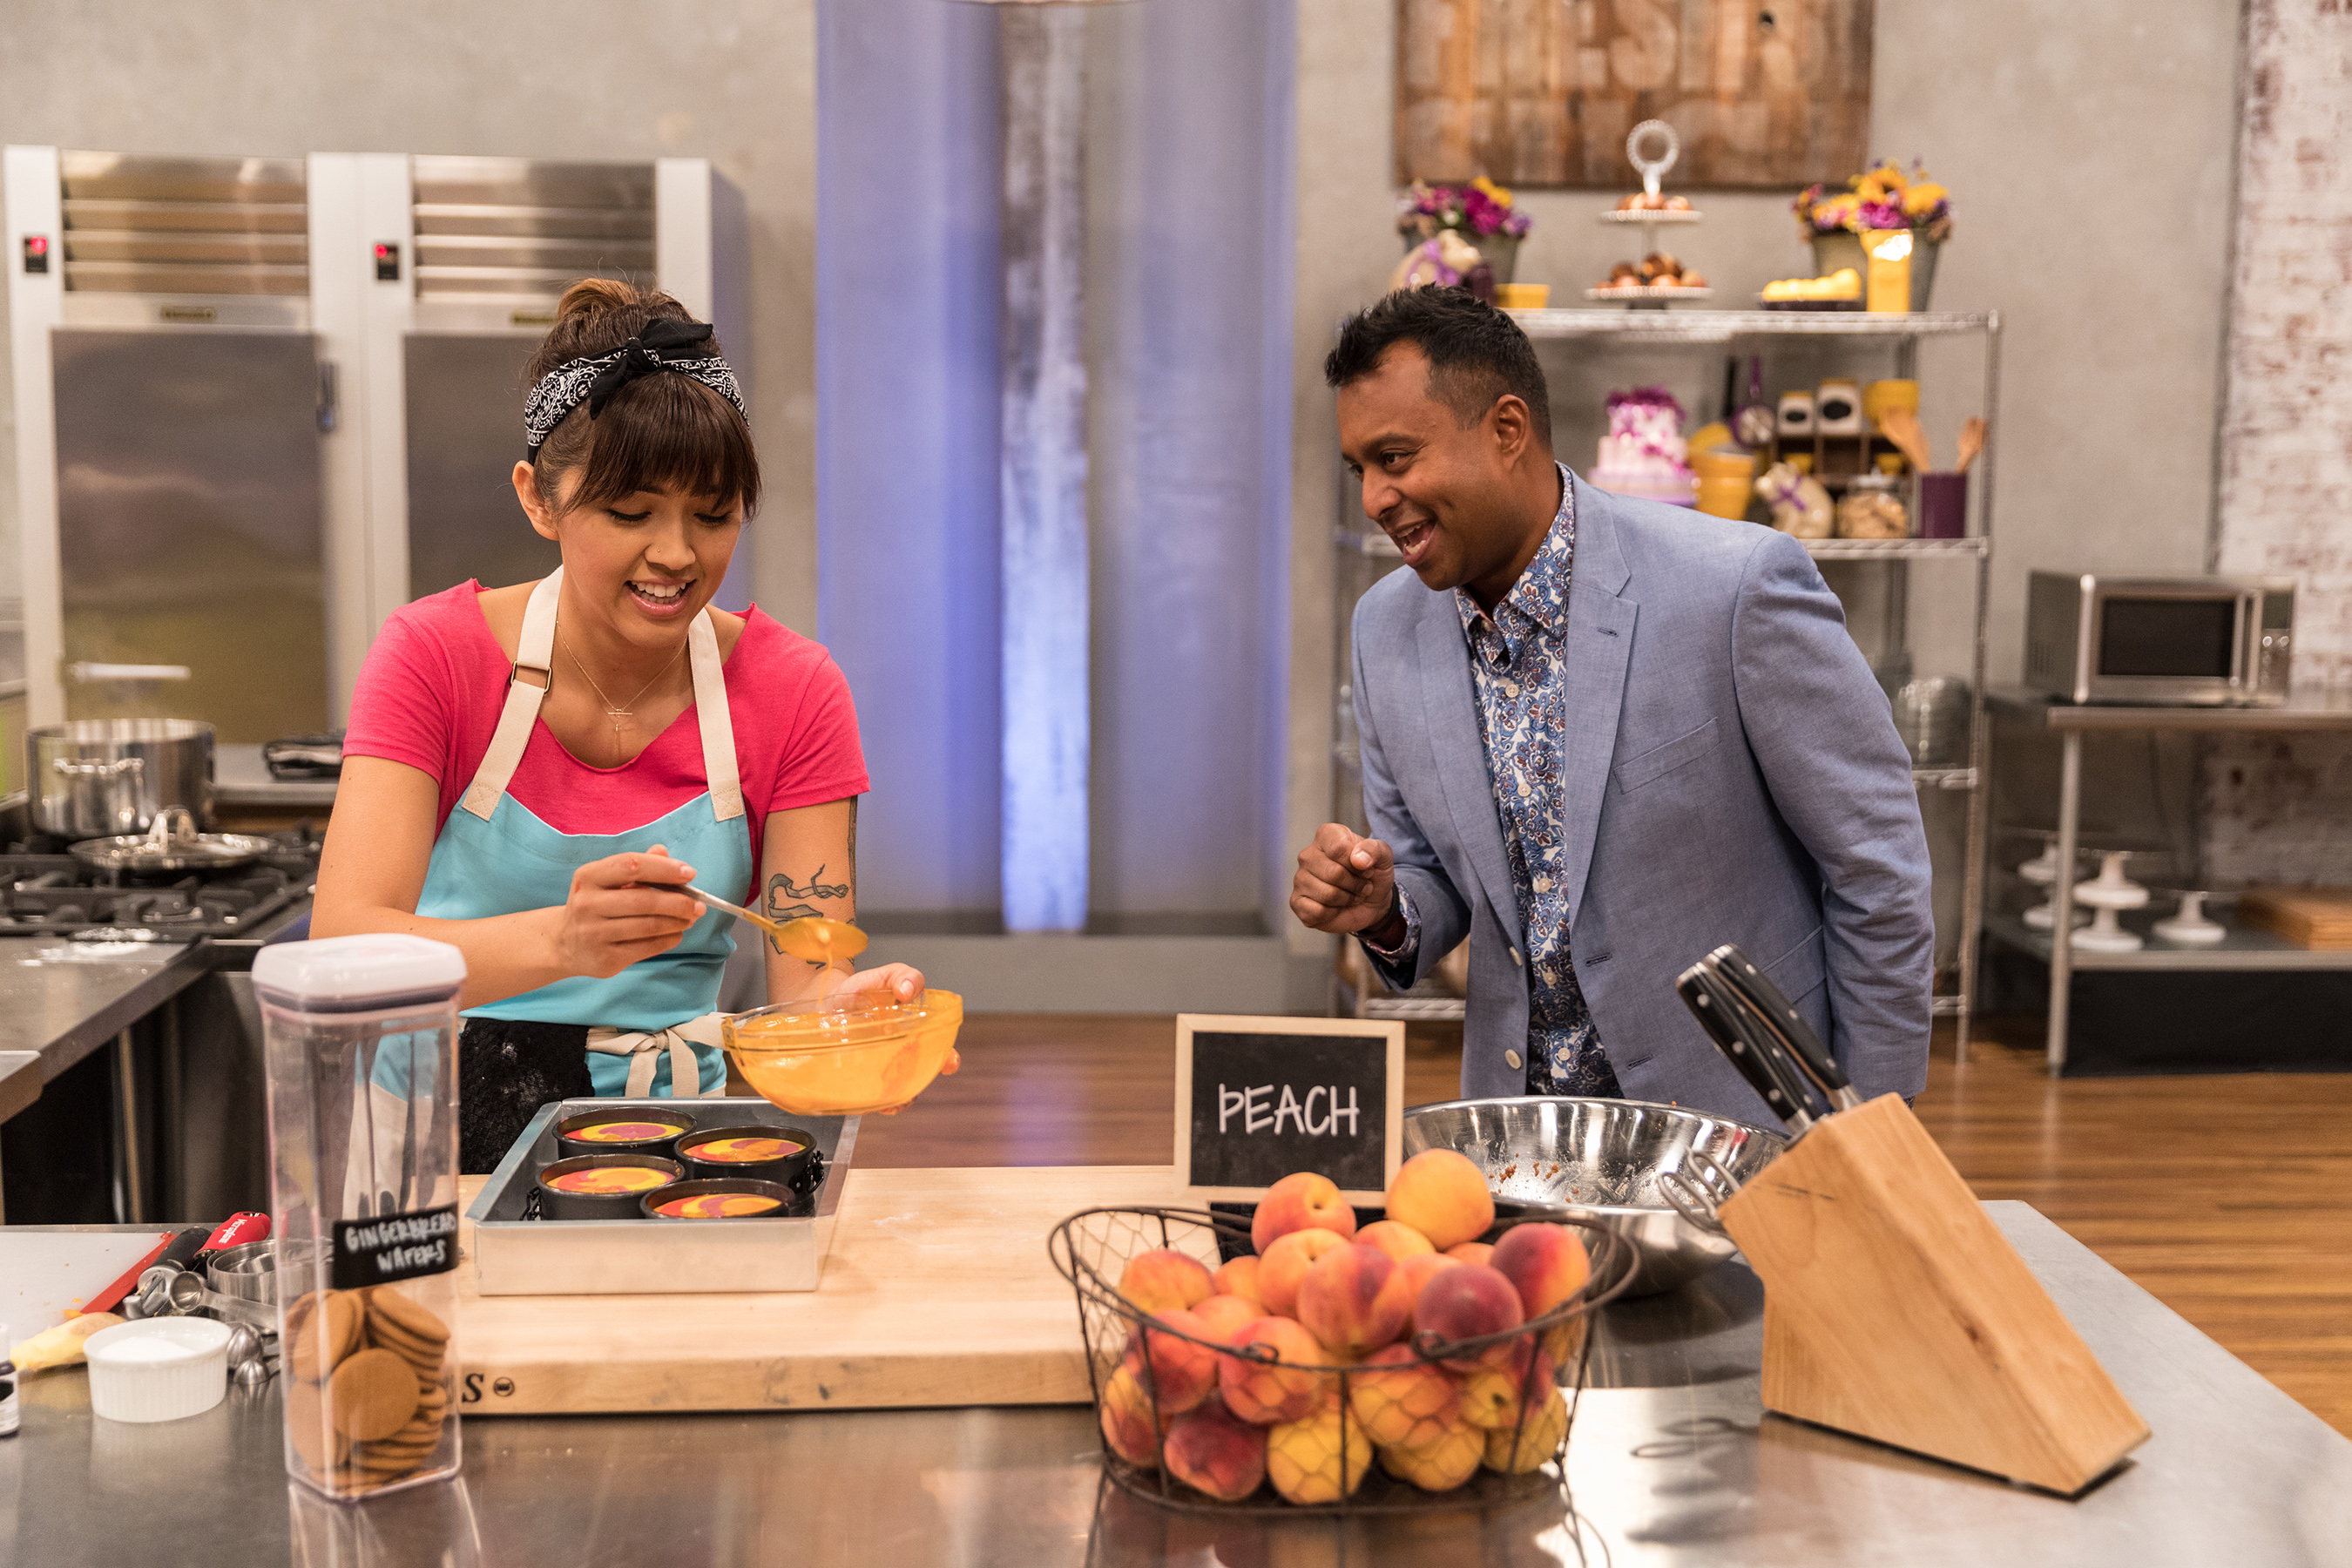 Ali Khan checks in on competitor on Food Network's Spring Baking Championship